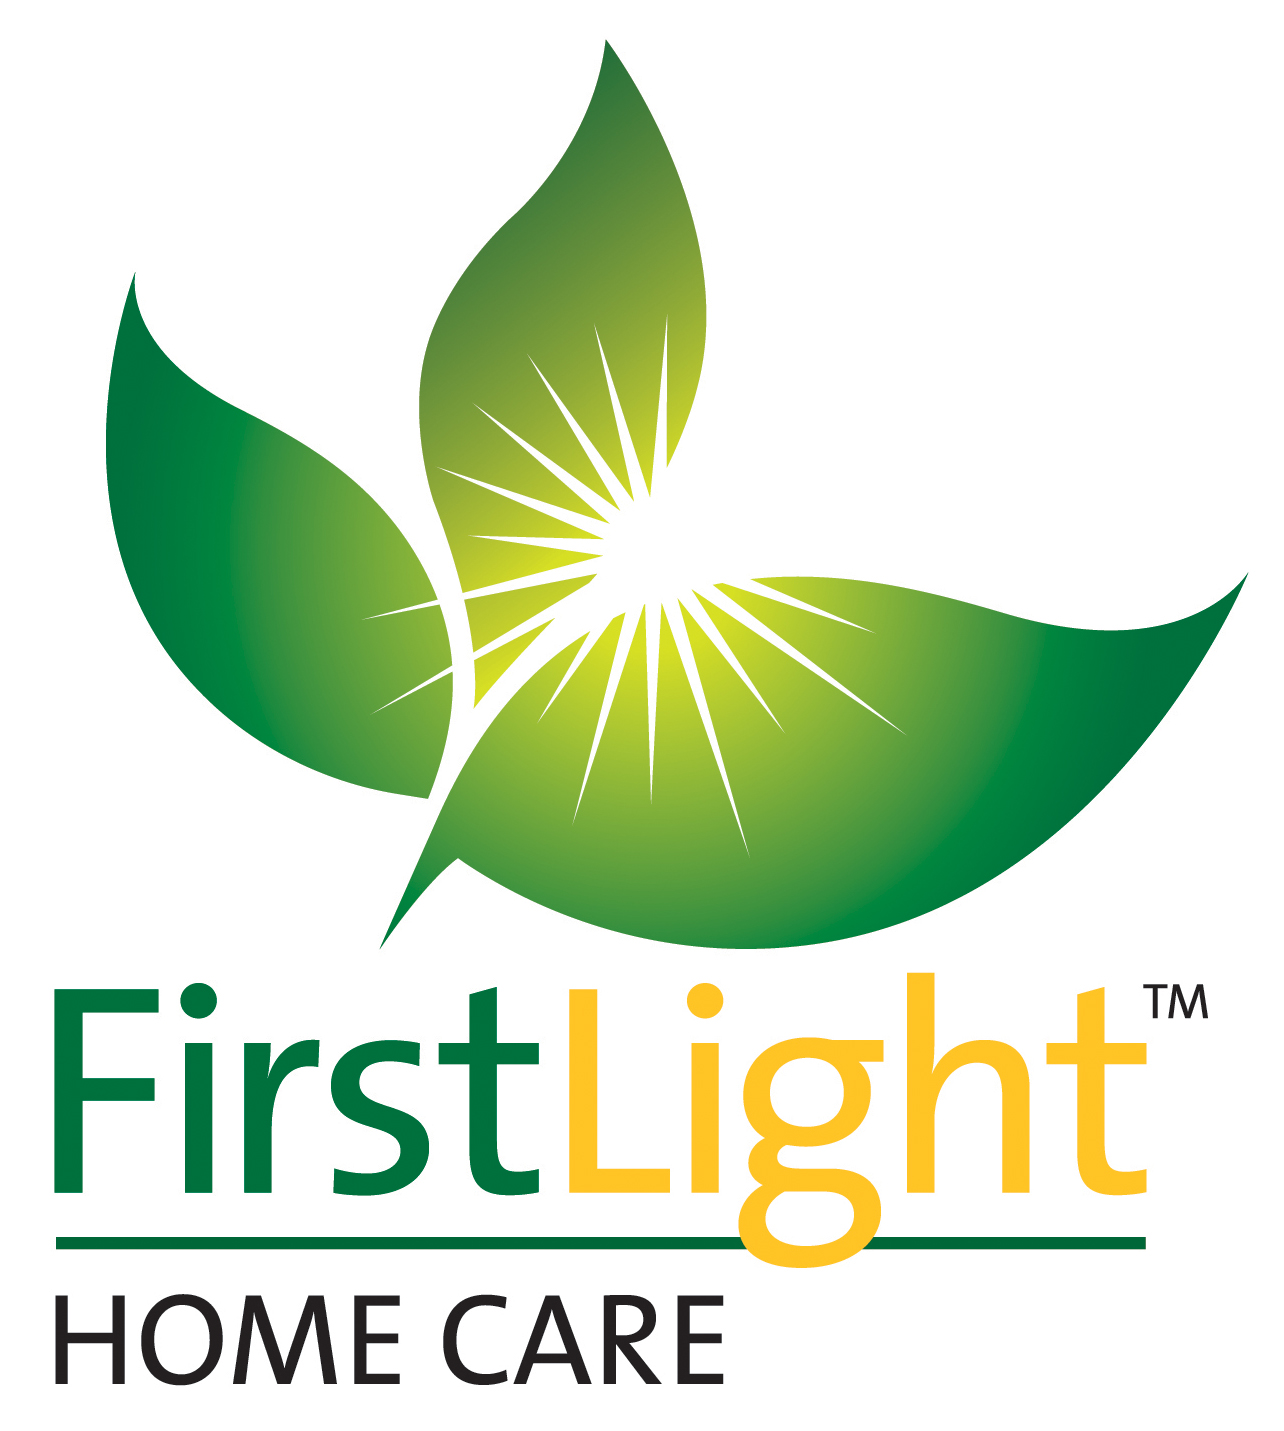 01b. FirstLight Home Care (Gold)